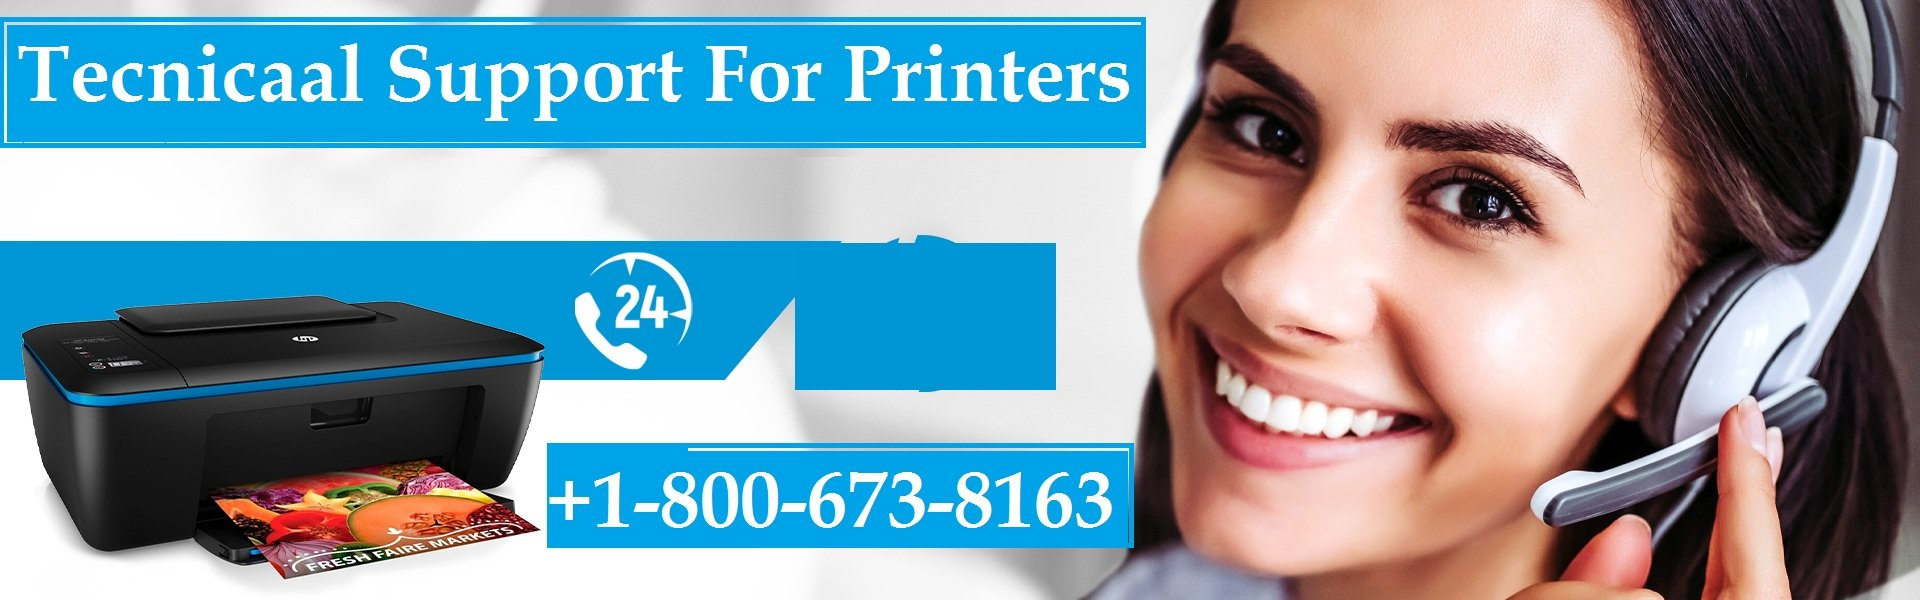 Setup And Install Hp Printers Support Assistant Software – 1-800-673-8163